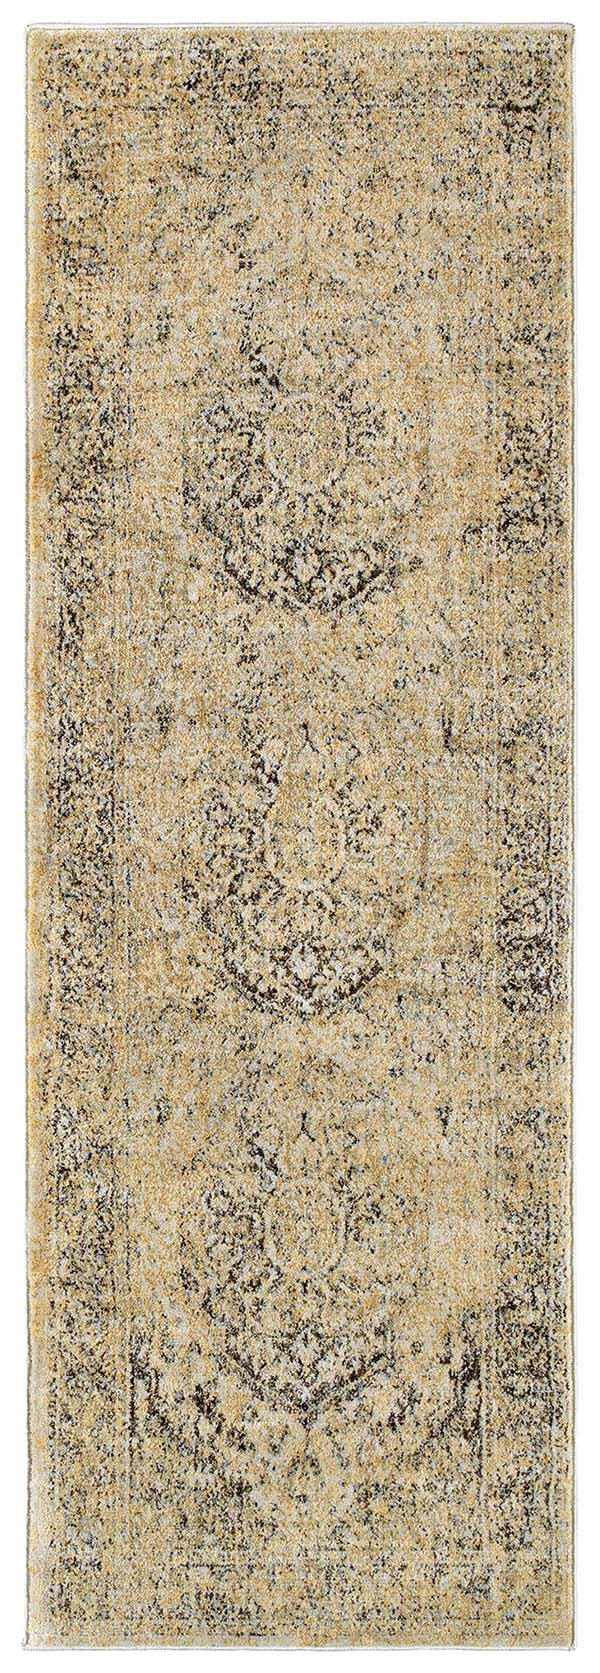 Gold (05) Vintage / Overdyed Area Rug